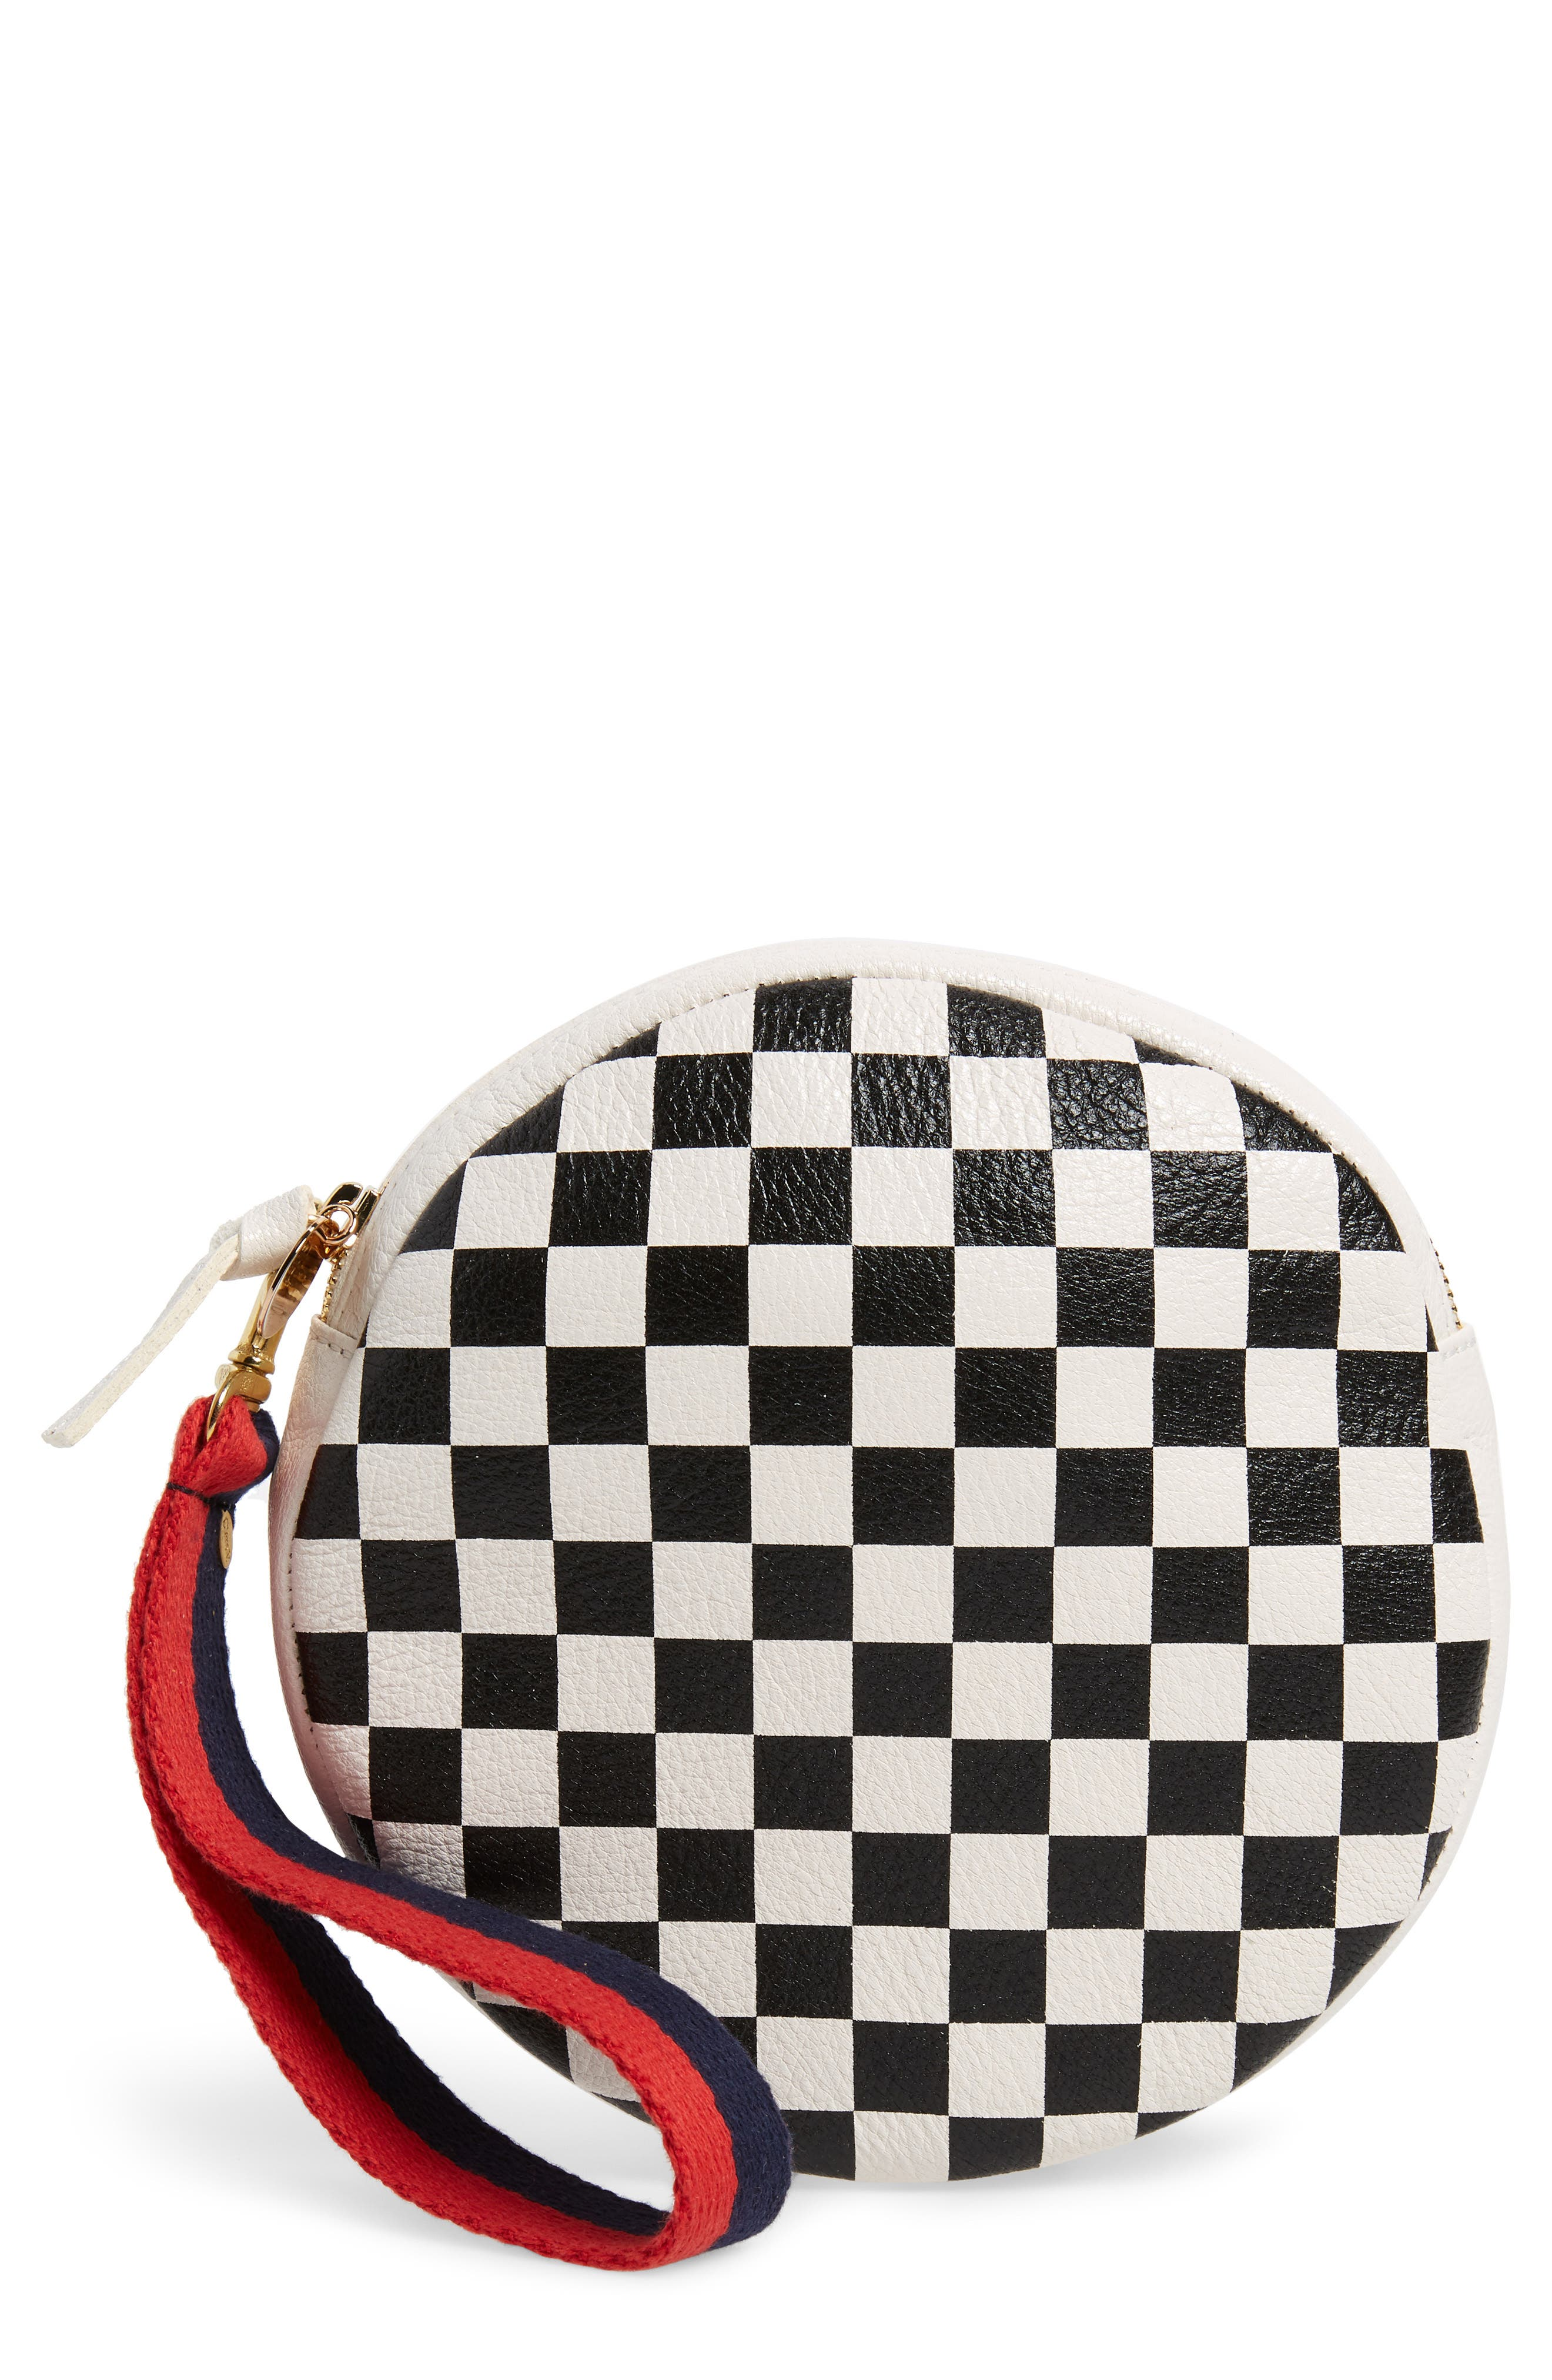 Checkered Leather Circle Clutch,                         Main,                         color, 001